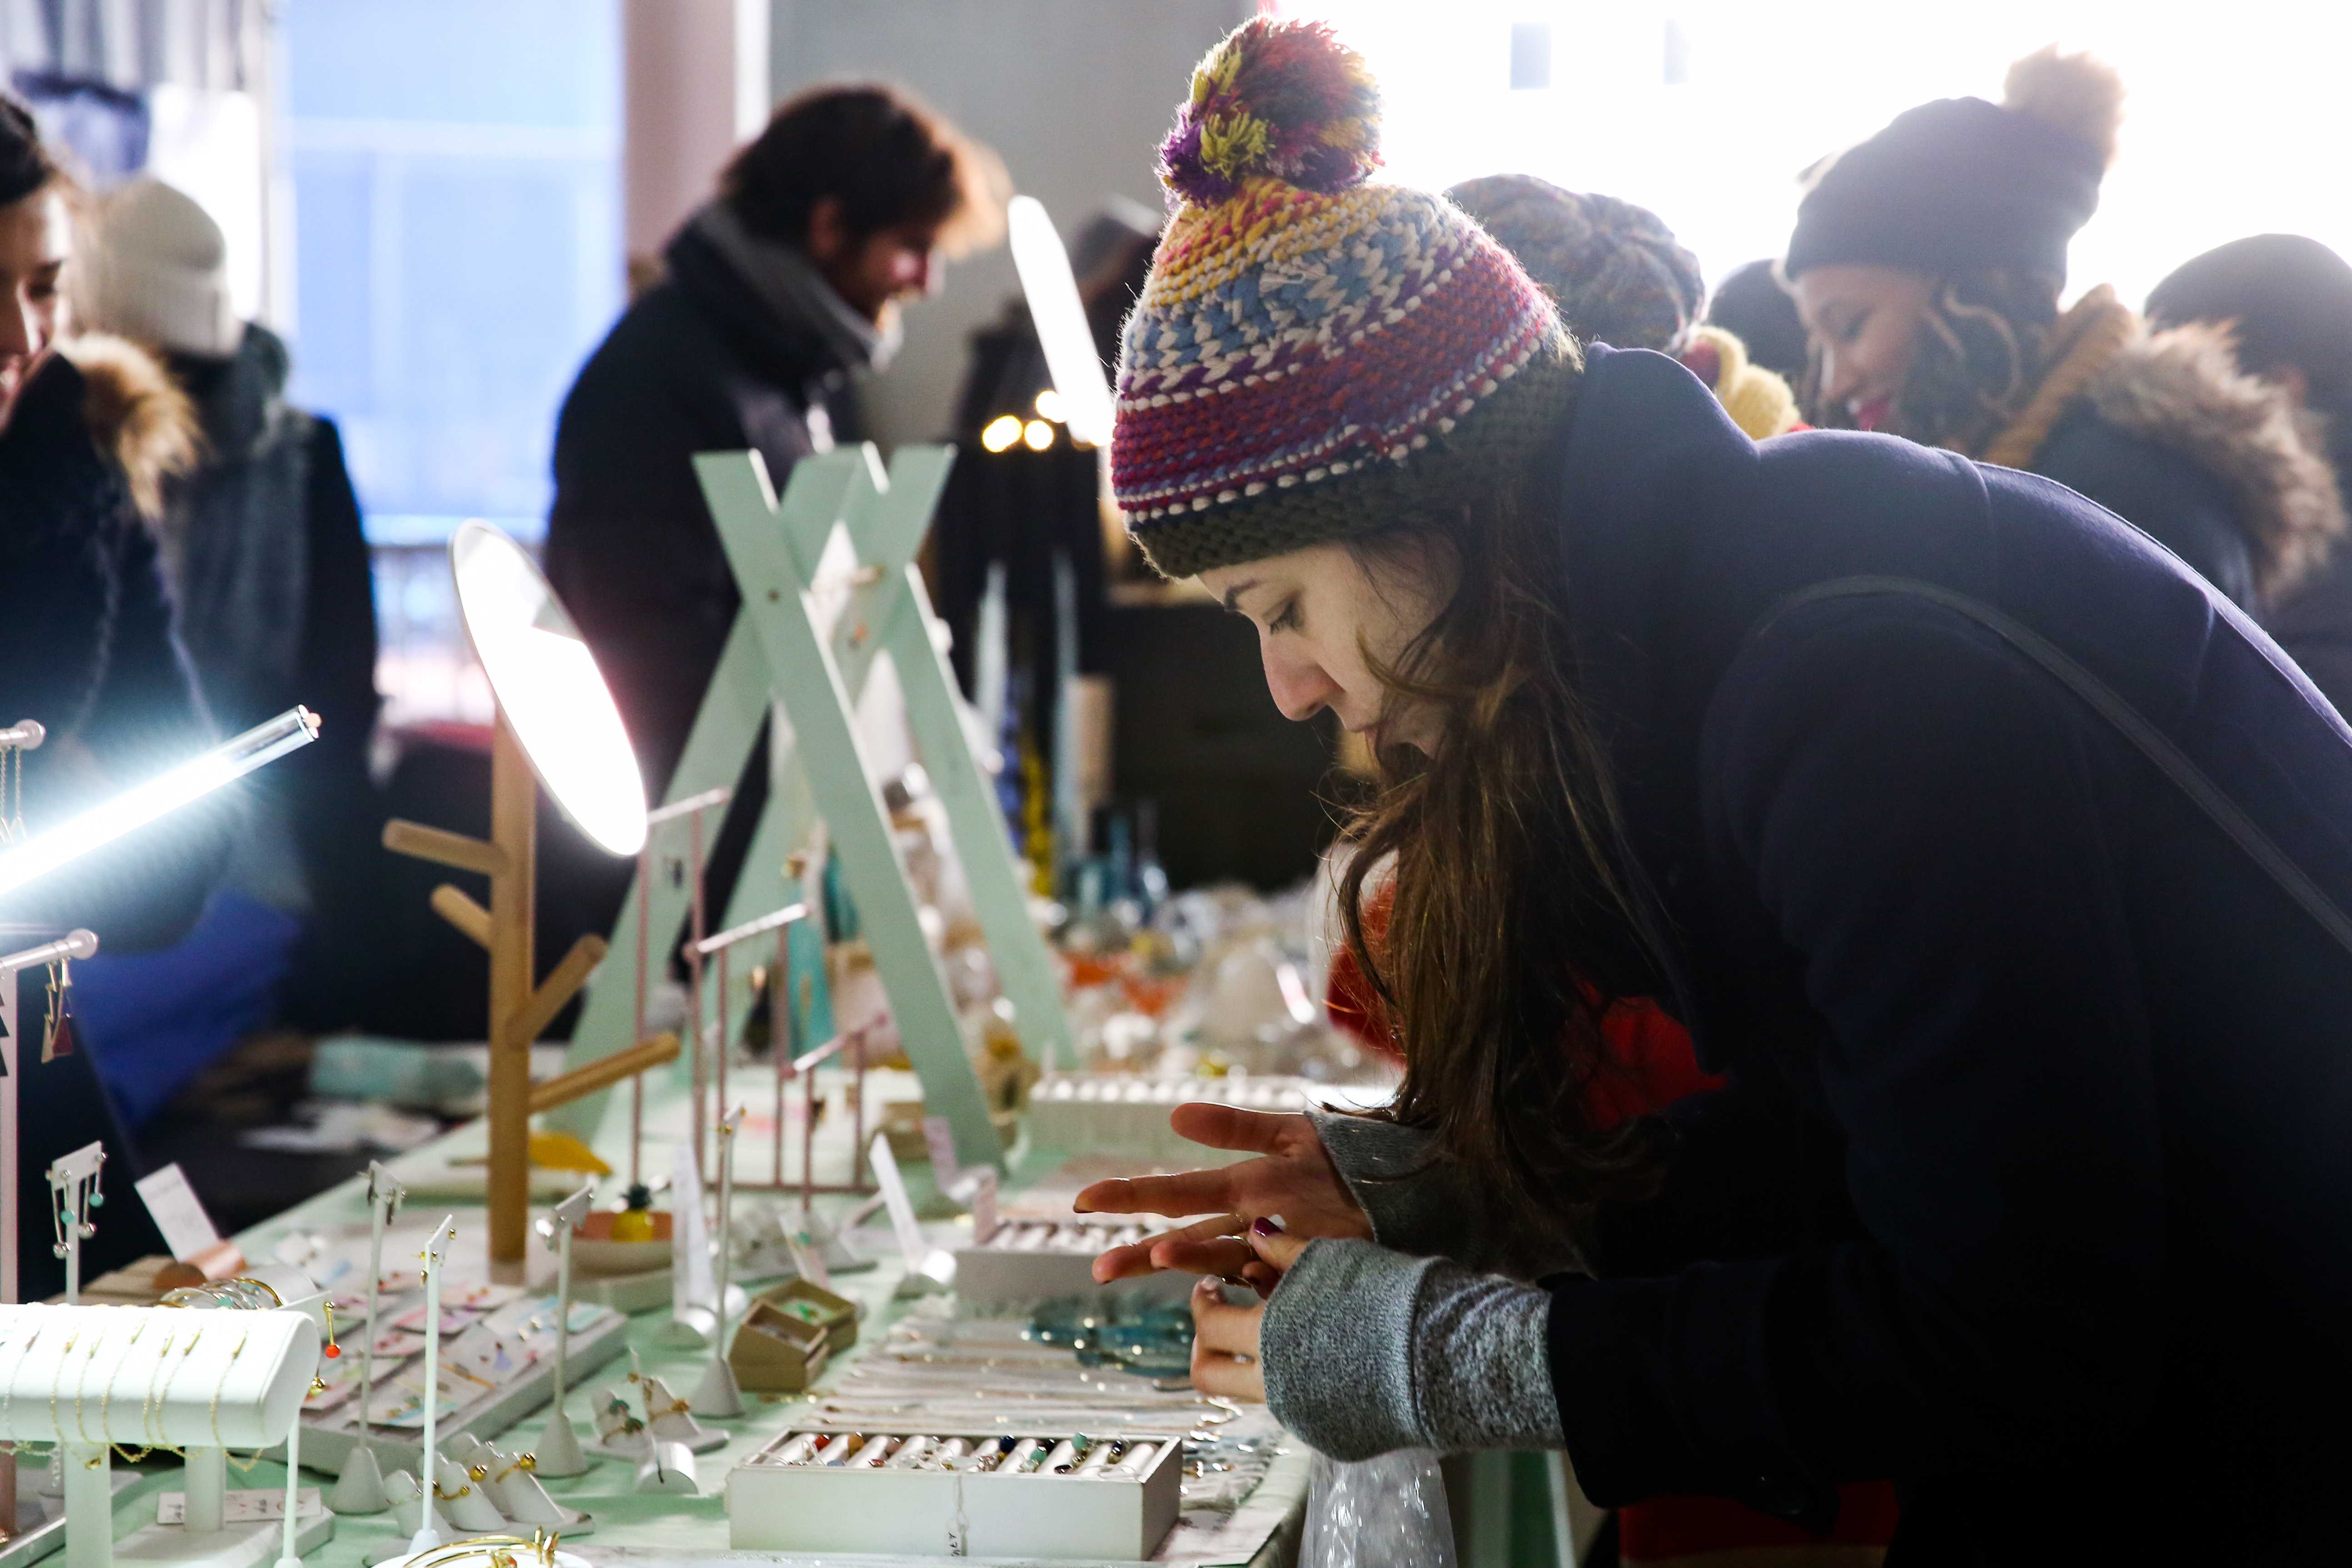 Crafty Bastards, D.C.'s arts and crafts fair, is now in its 14th year and the offerings are cooler than ever. The fair offers artisanal goods like locally-made prints, handcrafted jewelry and small-batch soaps that are perfect for holiday gifts. Or just treating yourself.  The fair runs through 5 p.m. on Sunday at Nats Park. (Amanda Andrade-Rhoades/DC Refined)